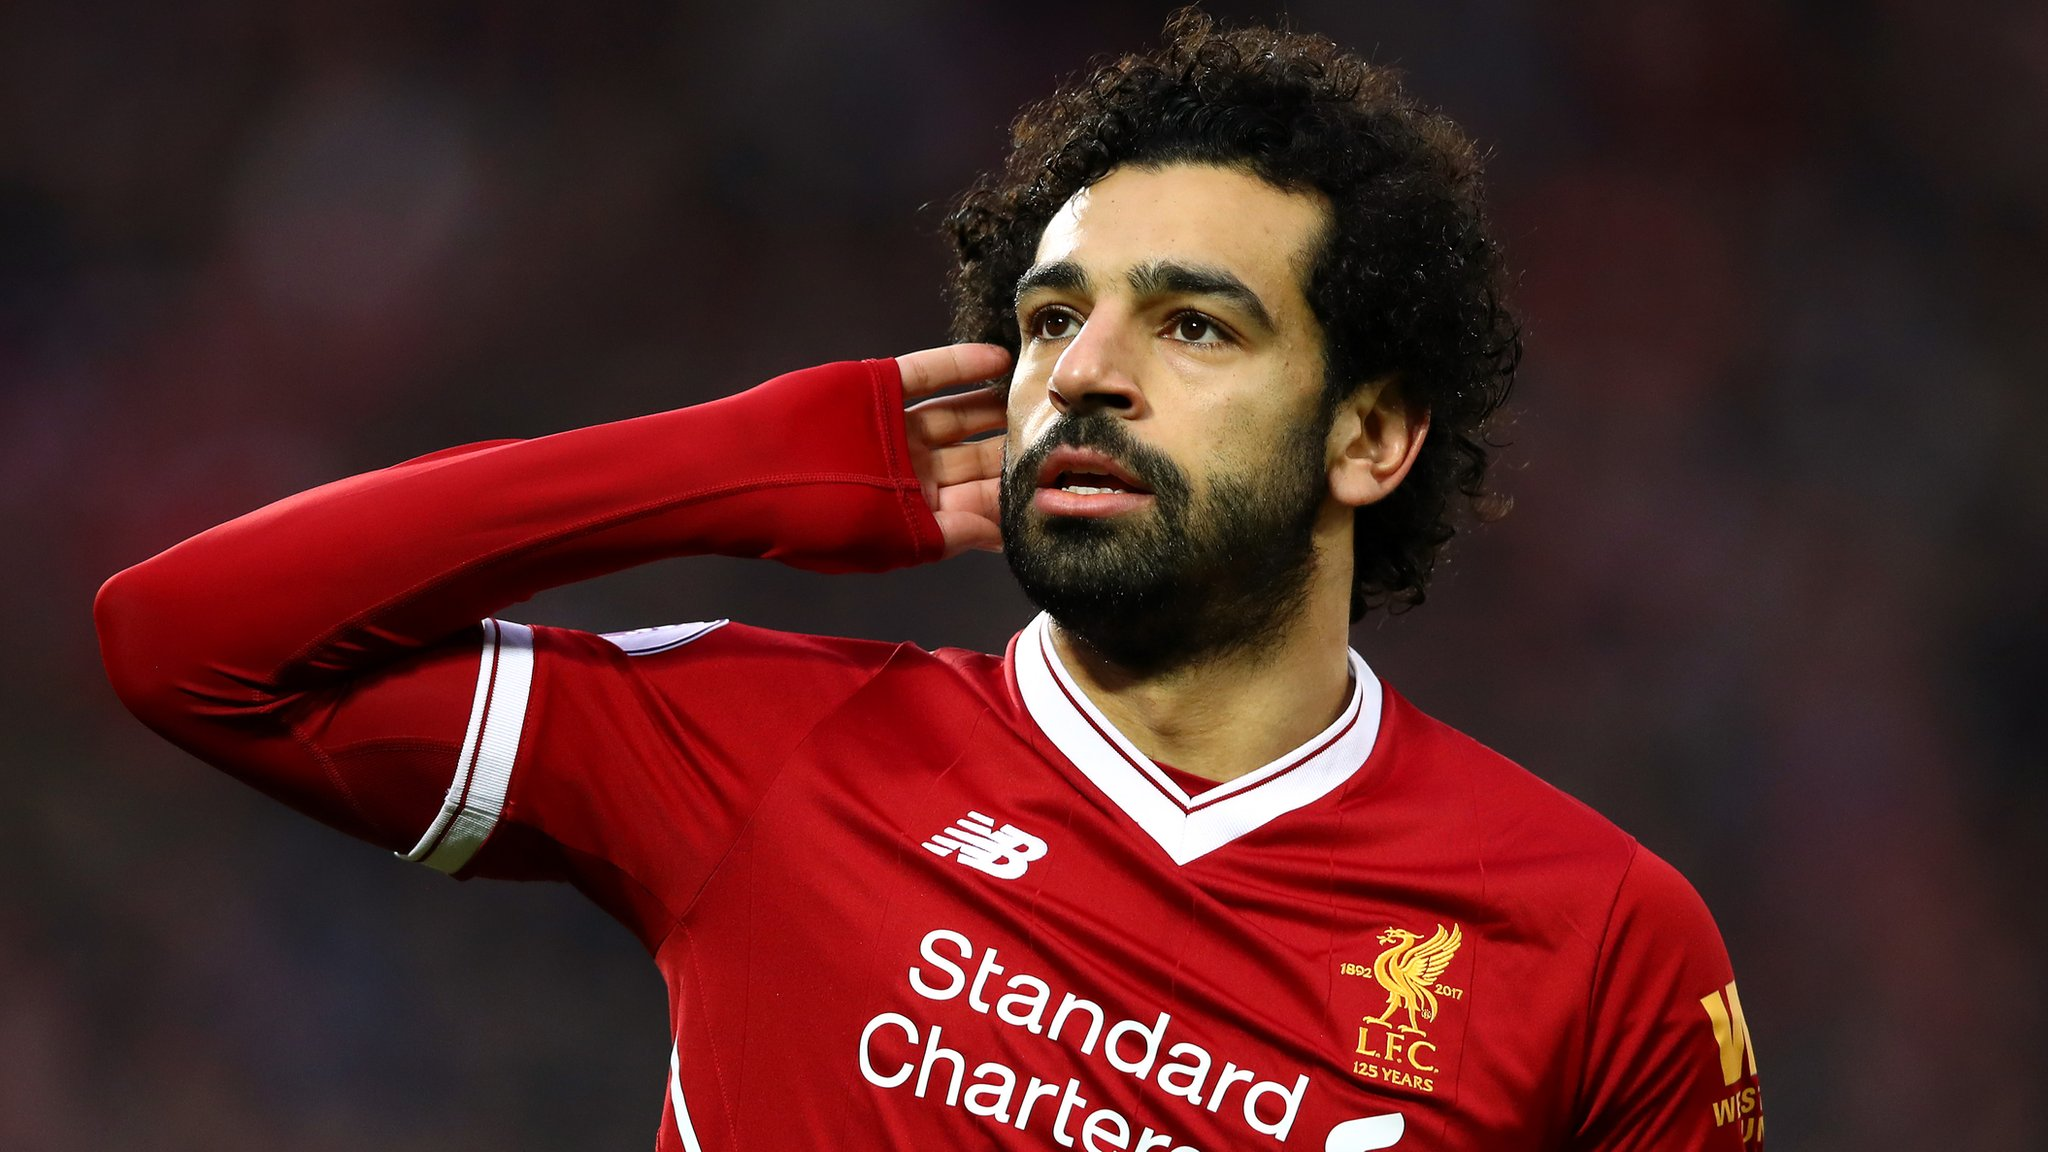 Barca, PSG and Real want £200m Salah - Tuesday's gossip